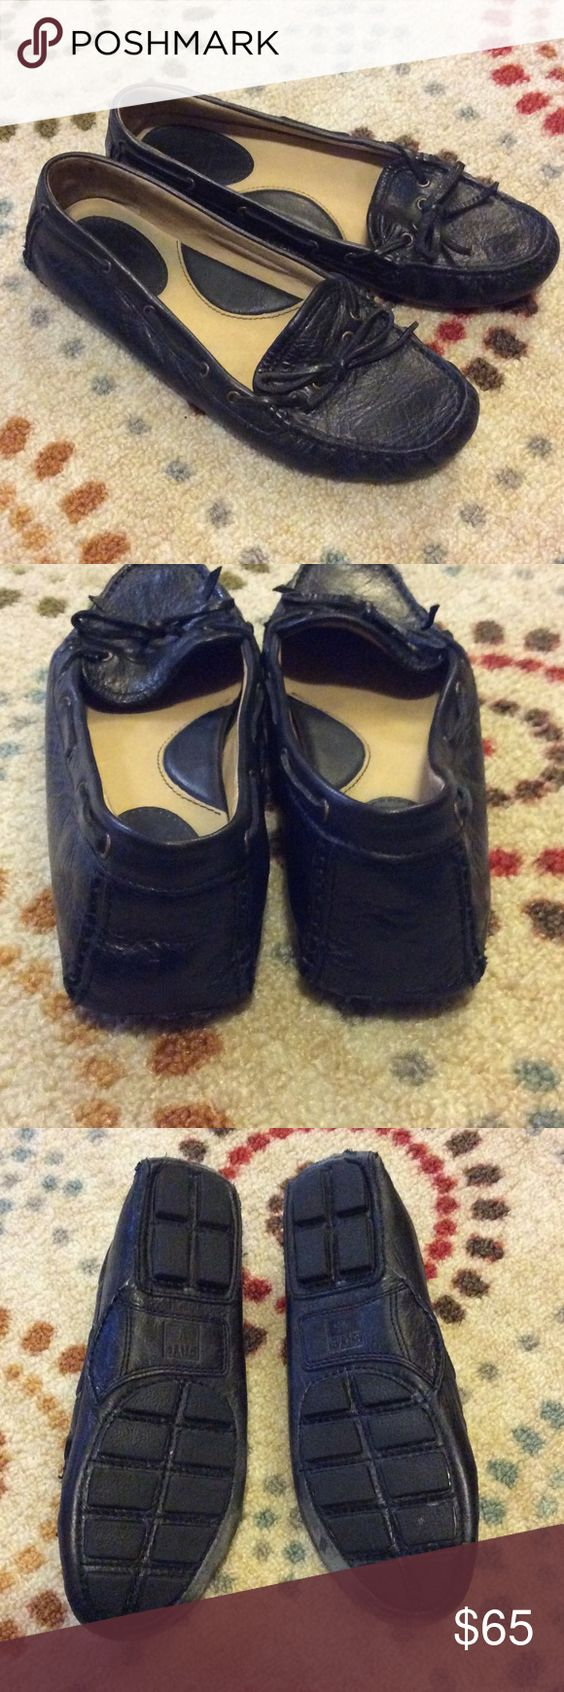 🌺Frye Leather Moccasins🌺 Super cute and comfortable Frye moccasins.  These moccasins show some wear. Price reflects imperfections. Frye Shoes Moccasins